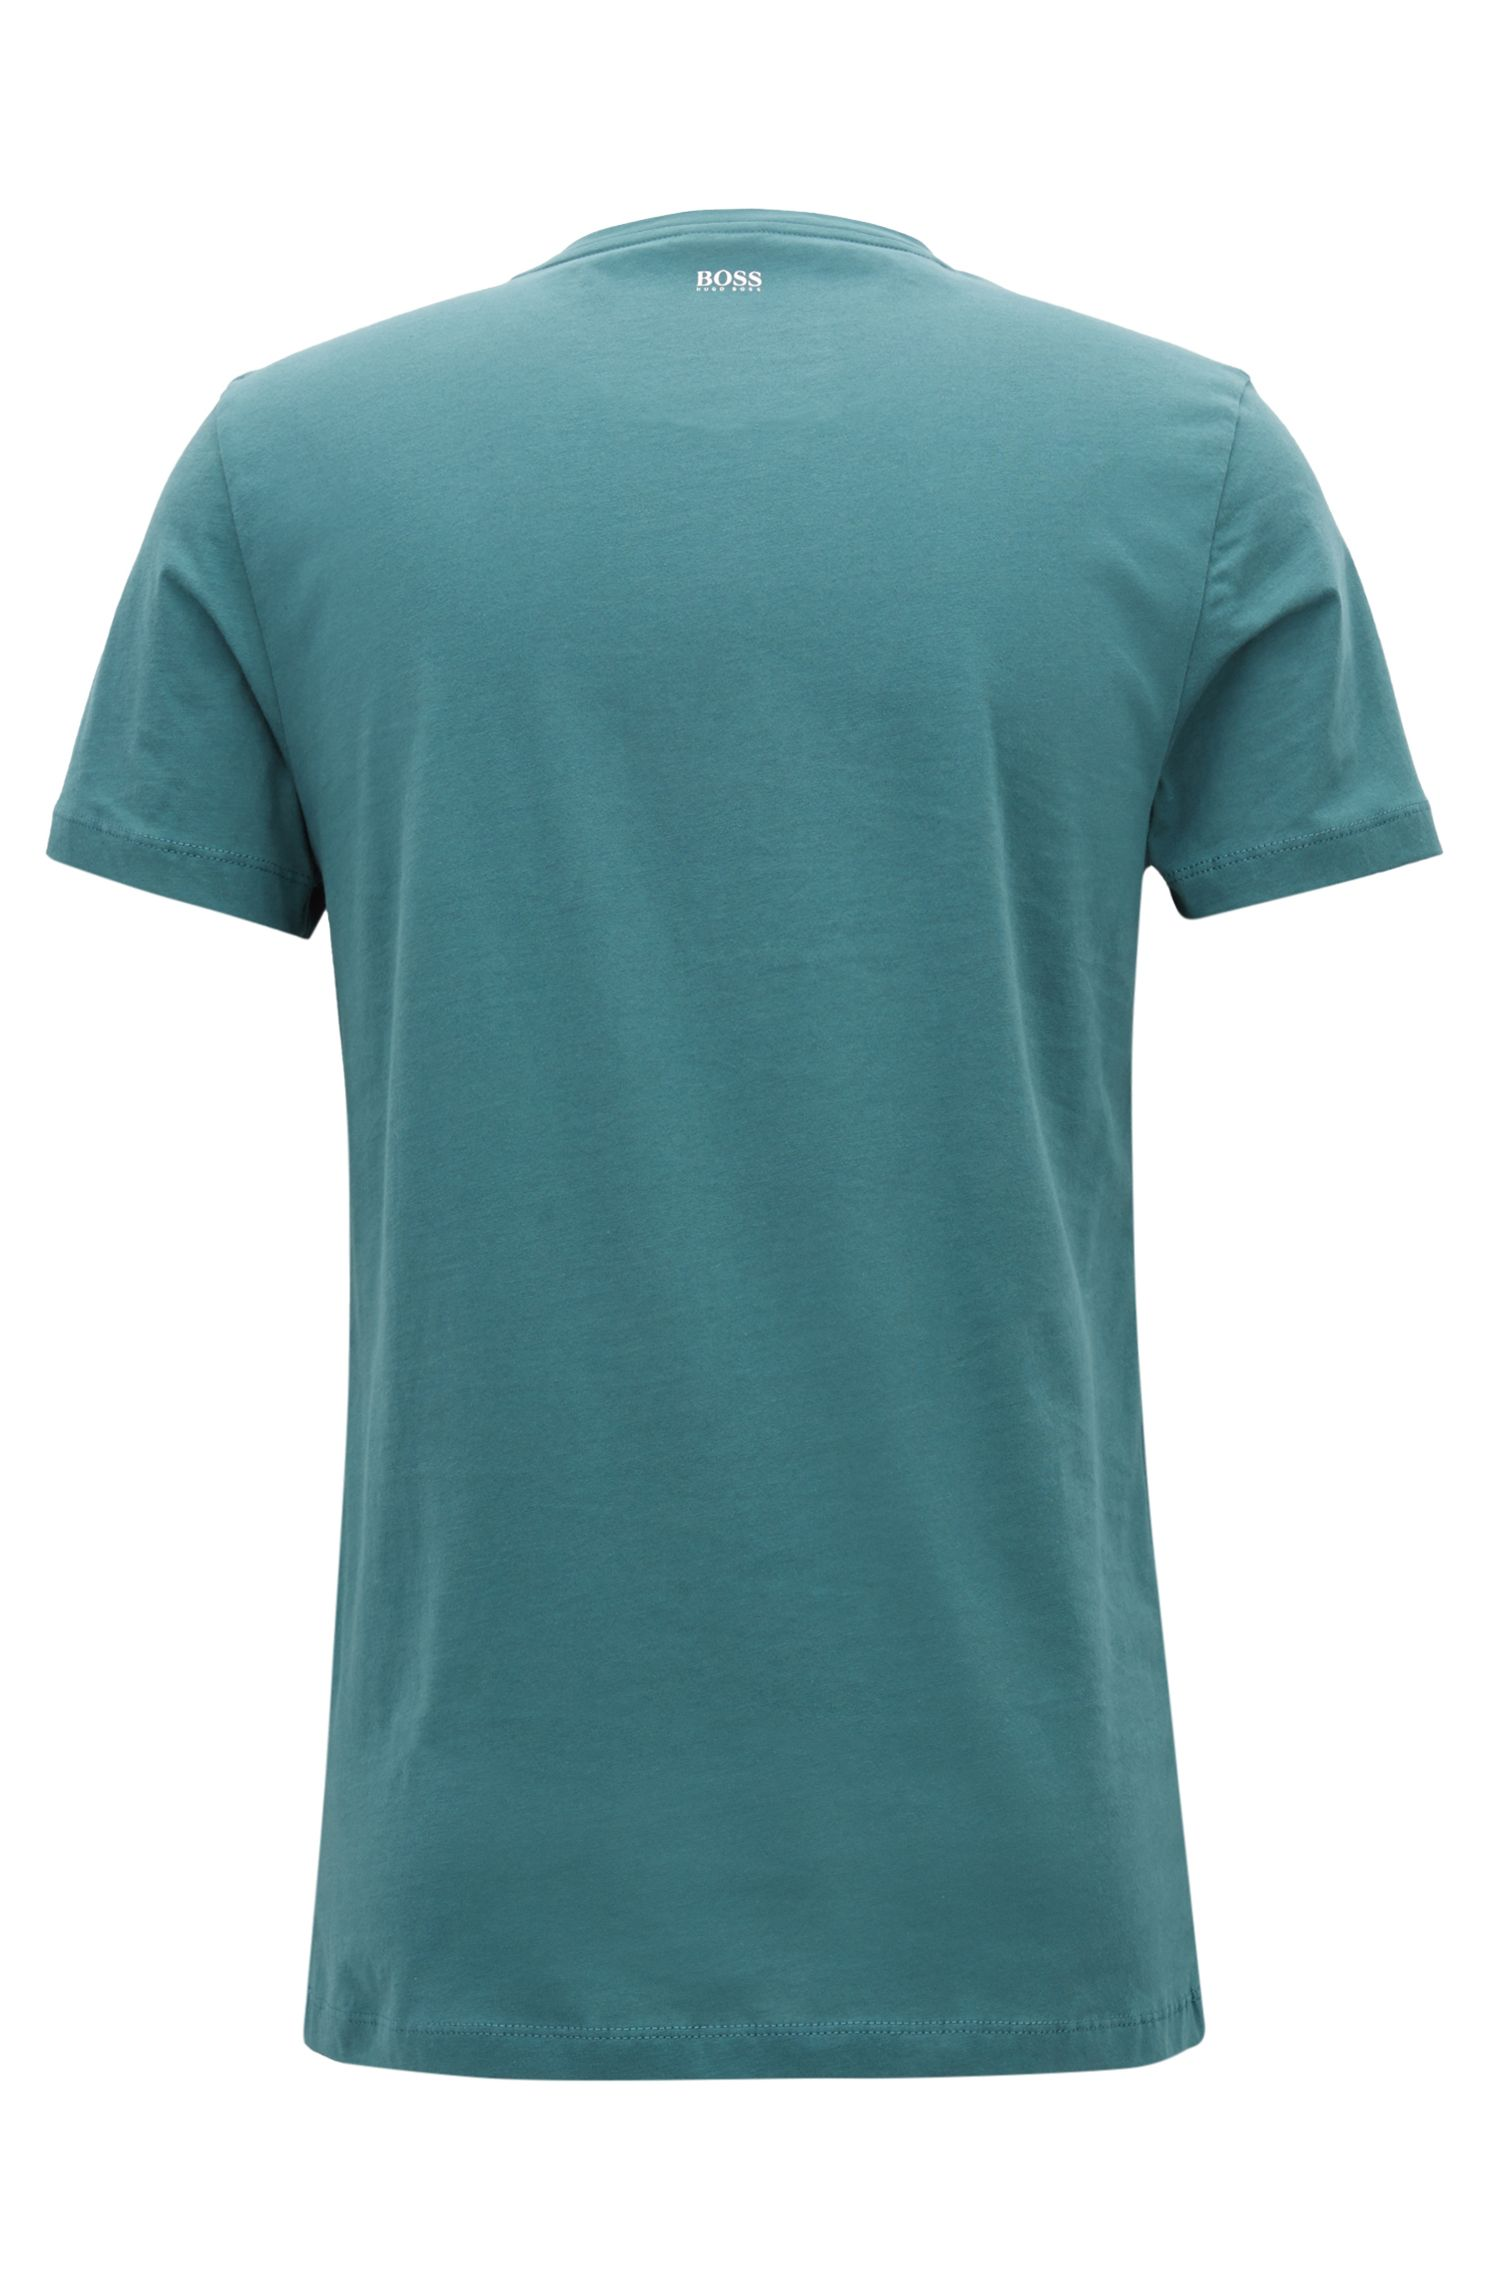 Jersey T-shirt with dégradé flocked logo